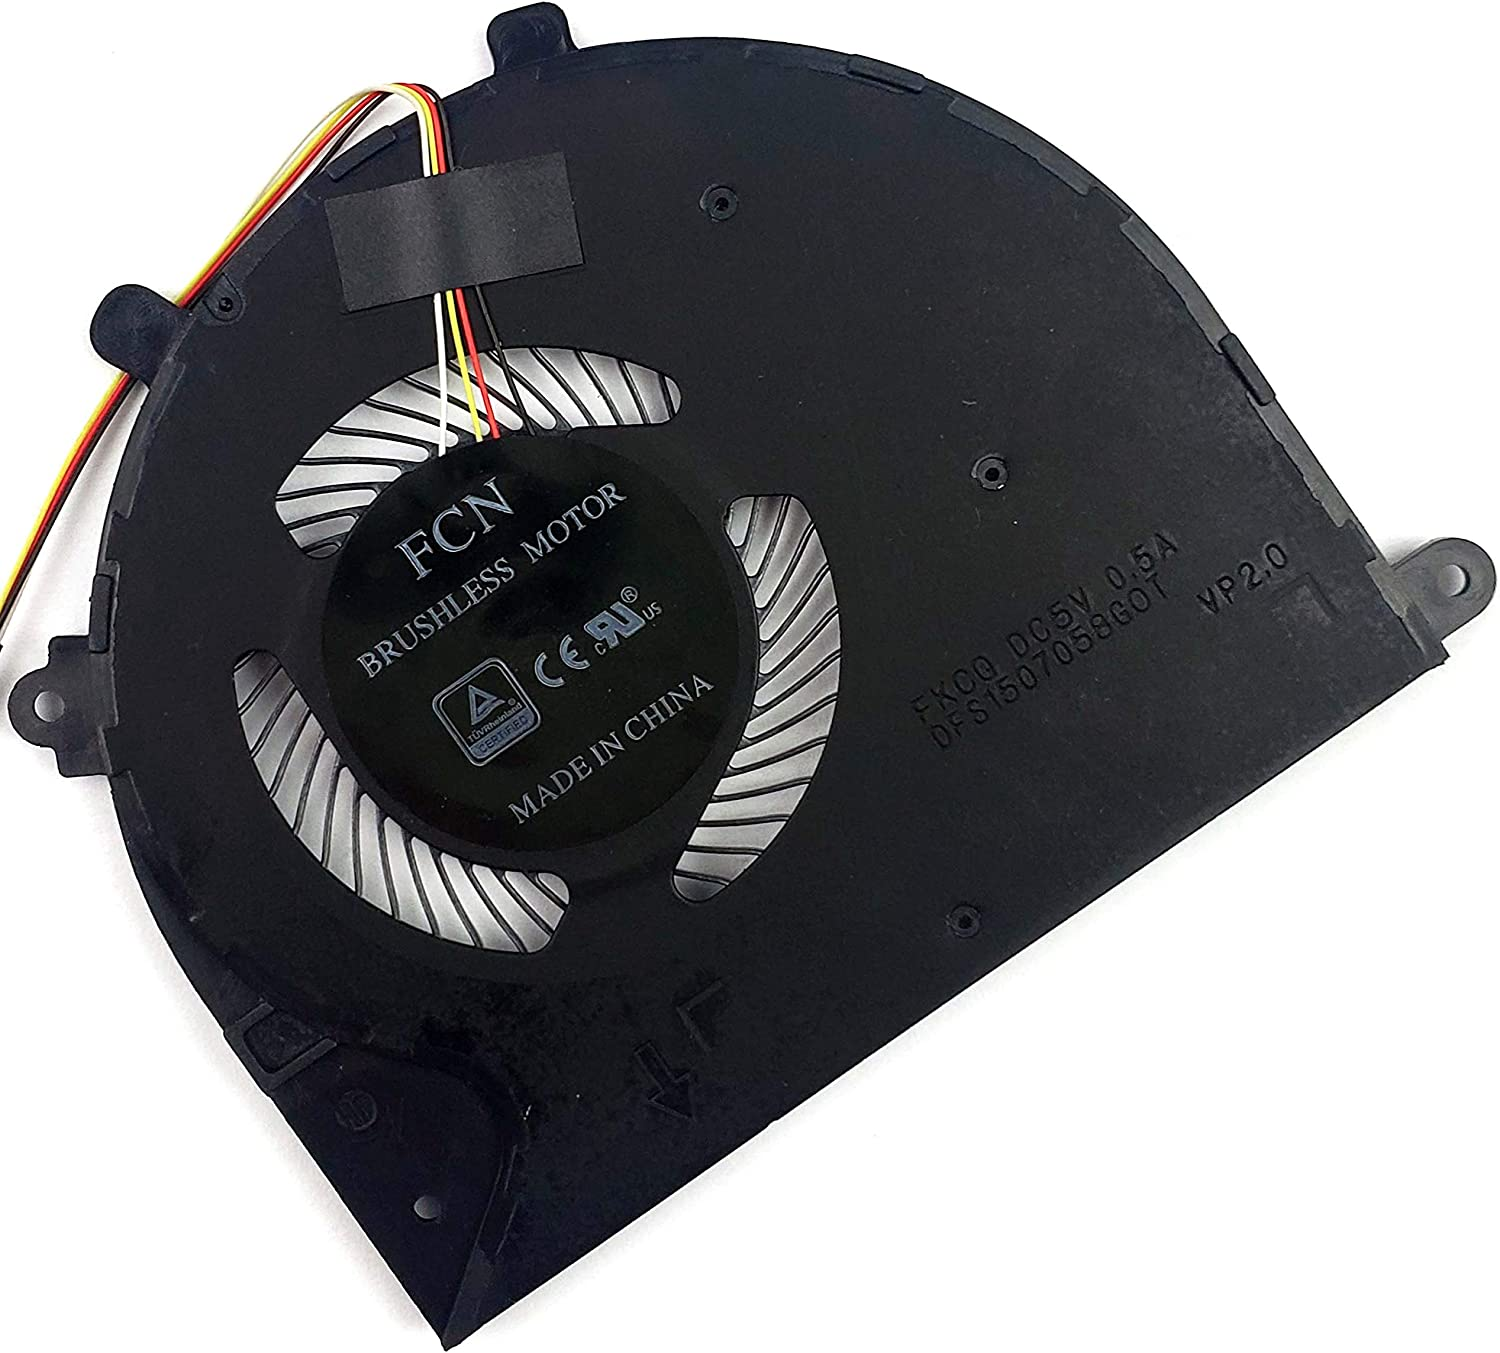 CPU Cooling Fan for Razer Blade Stealth RZ09-0239 Series Laptop